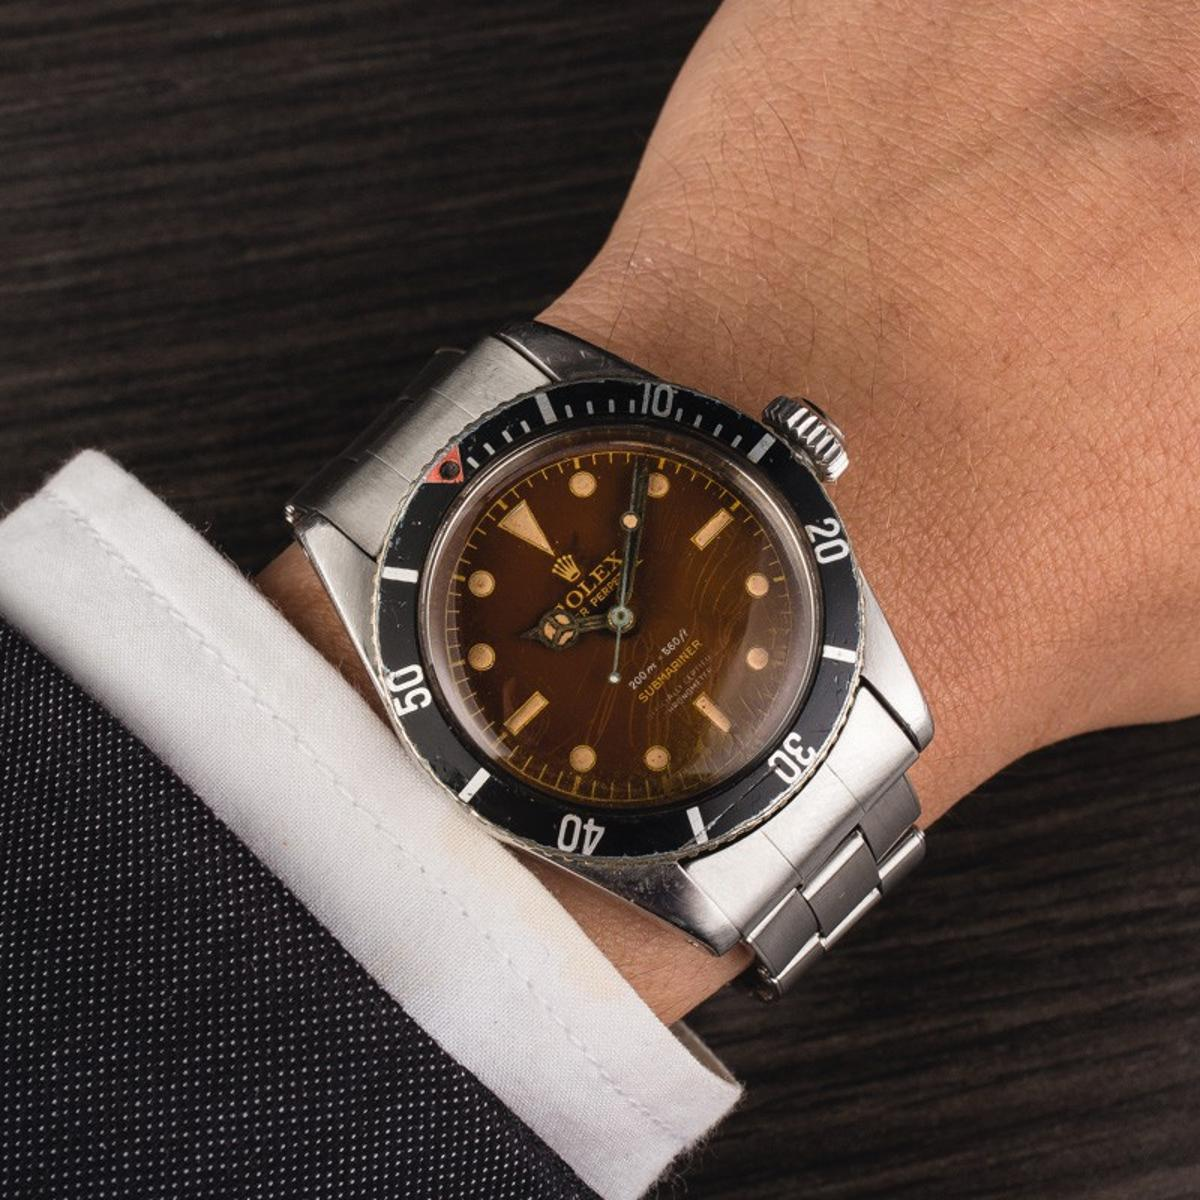 The Rolex Submariner Reference 6538 is the same as that worn by Sean Connery in Dr No